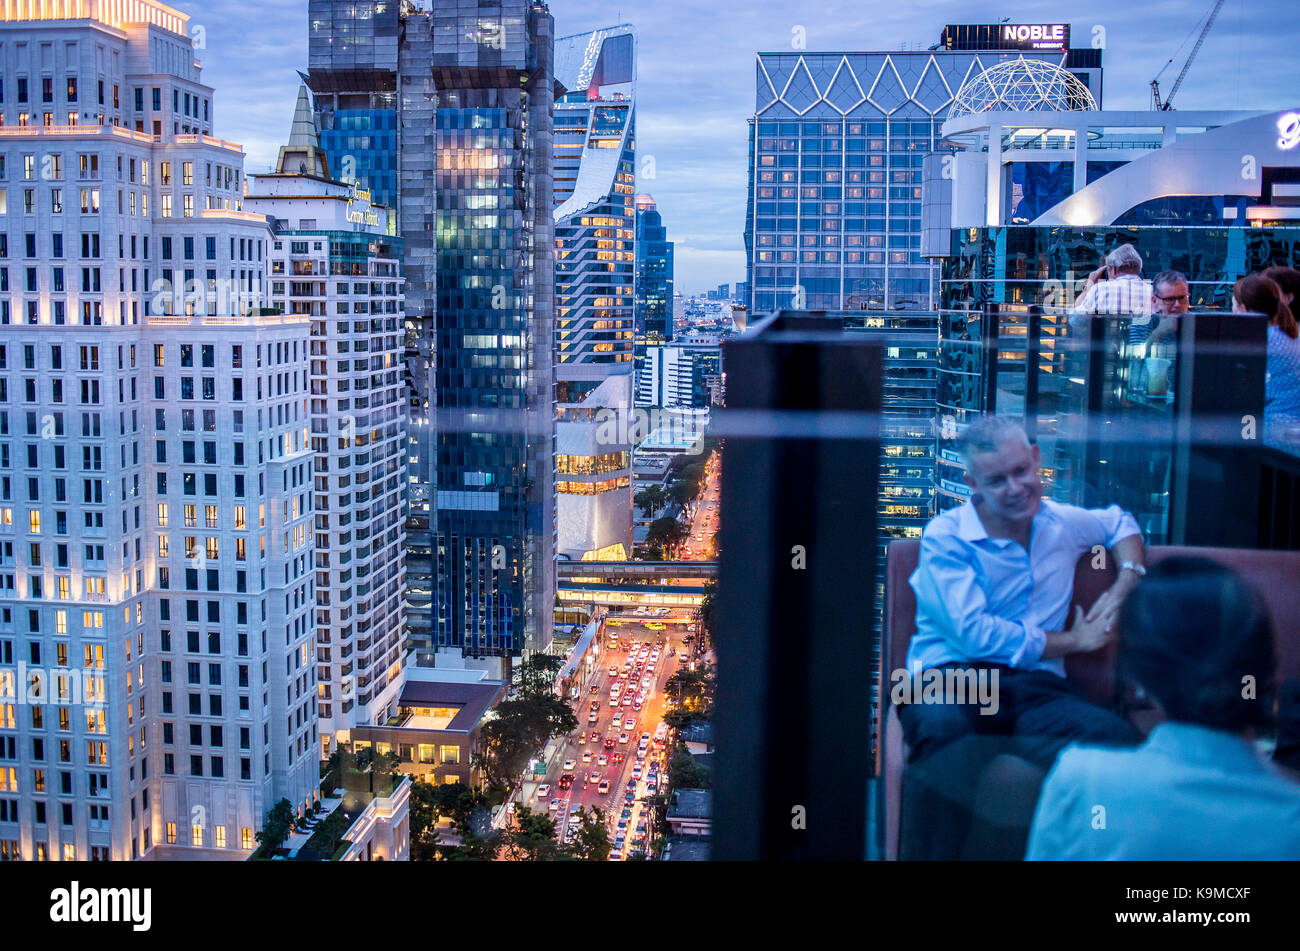 View from Char Rooftop Bar at Indigo Hotel, Skyline and Wireless Road at night, downtown, Bangkok, Thailand - Stock Image